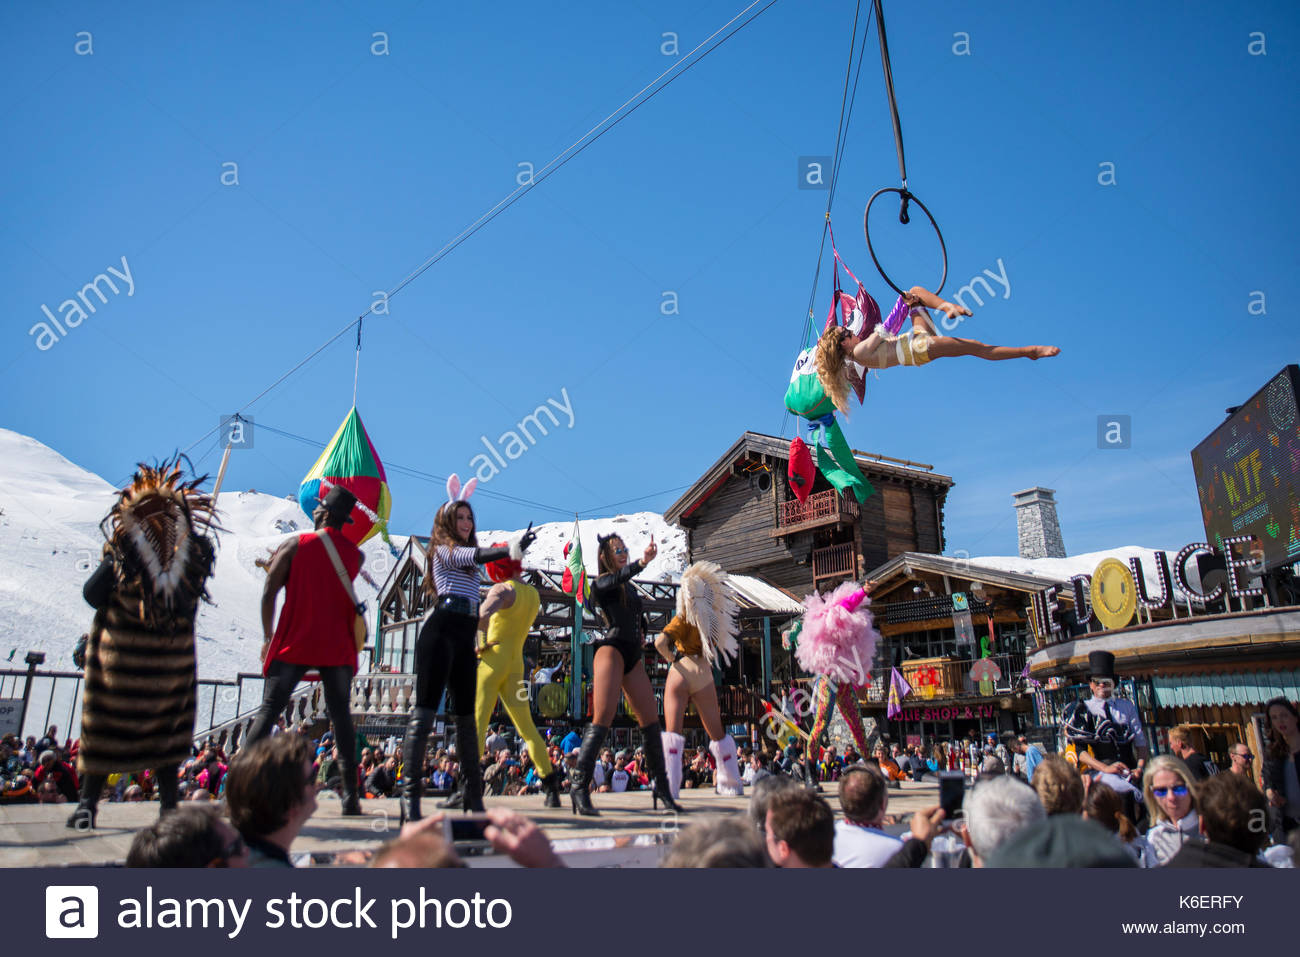 La Folie Douce Val D Isere France Stock Photo 158907055 Alamy